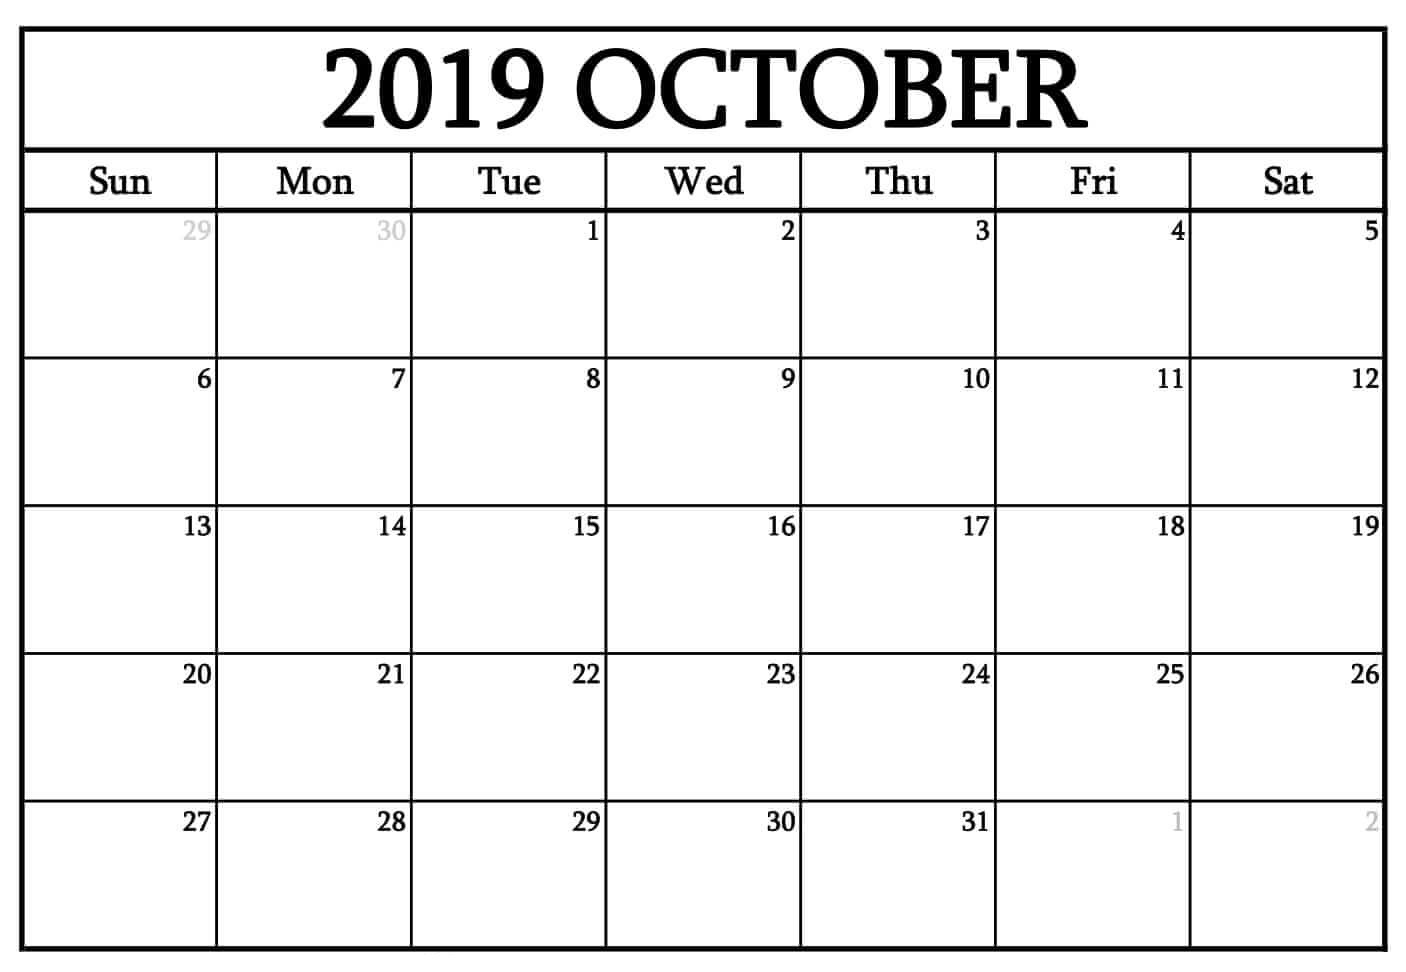 October 2019 Calendar Editable Template